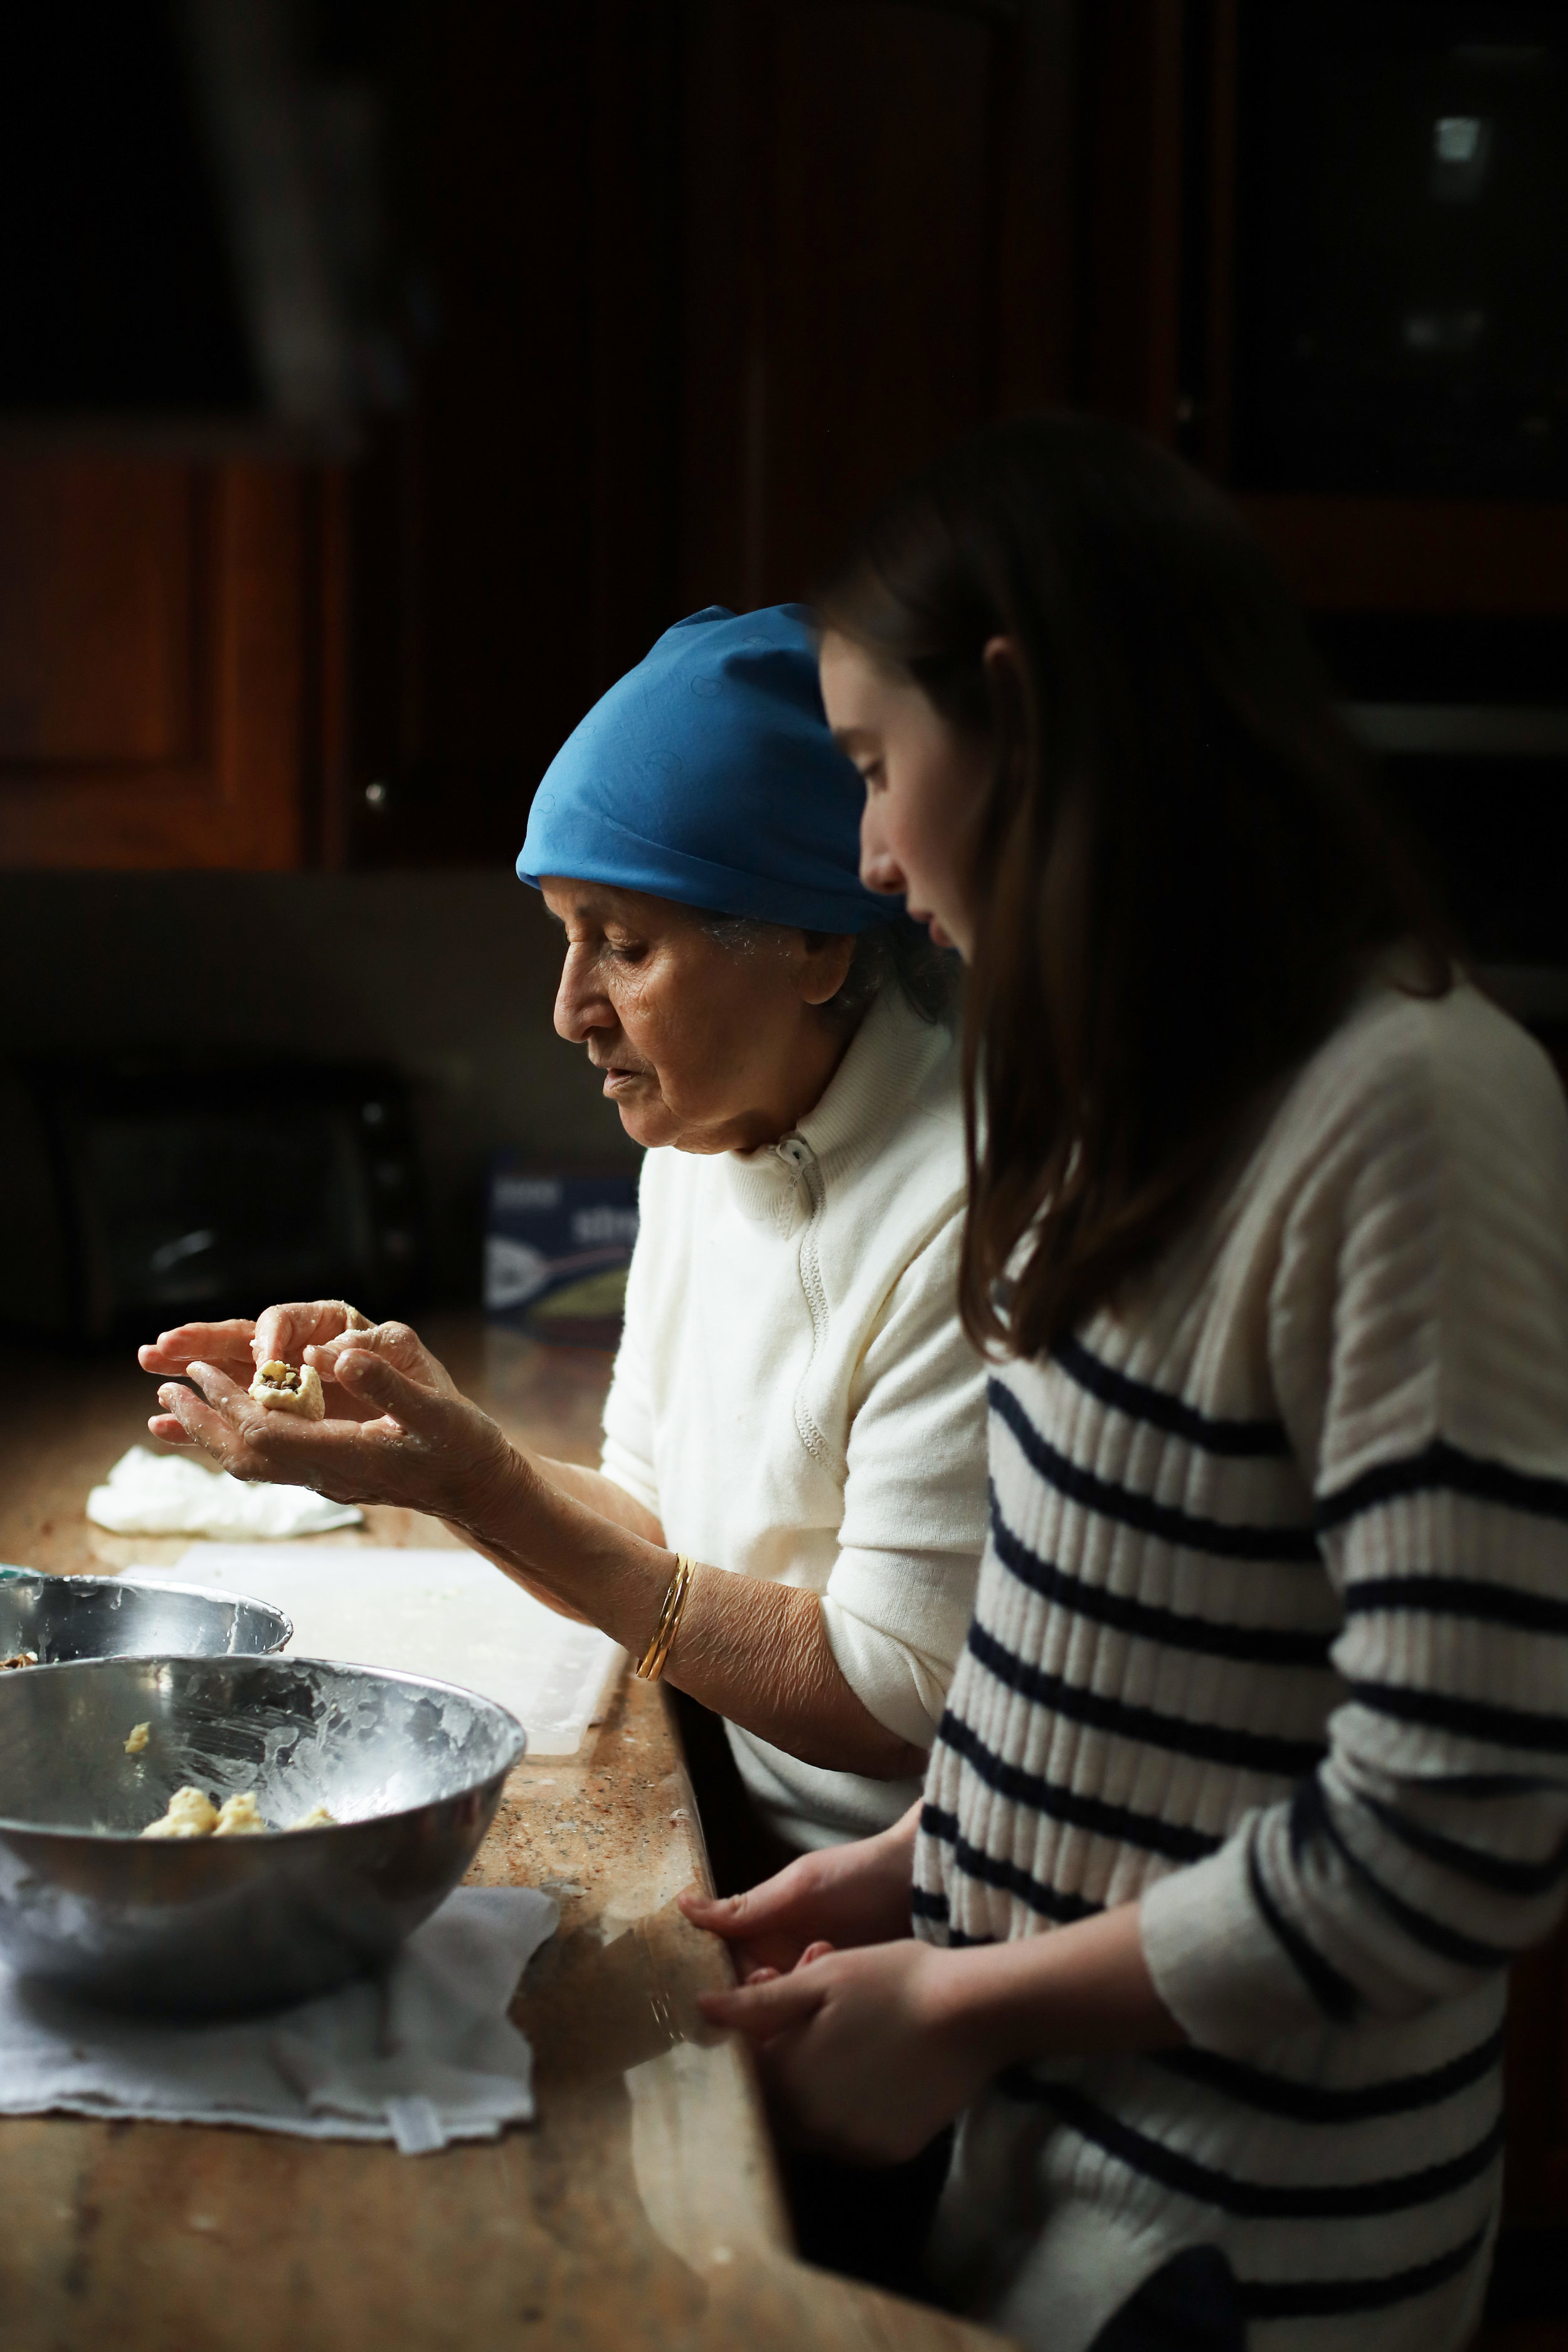 My aunt Masy teaching my cousin, Olivia, how to make kbeibat